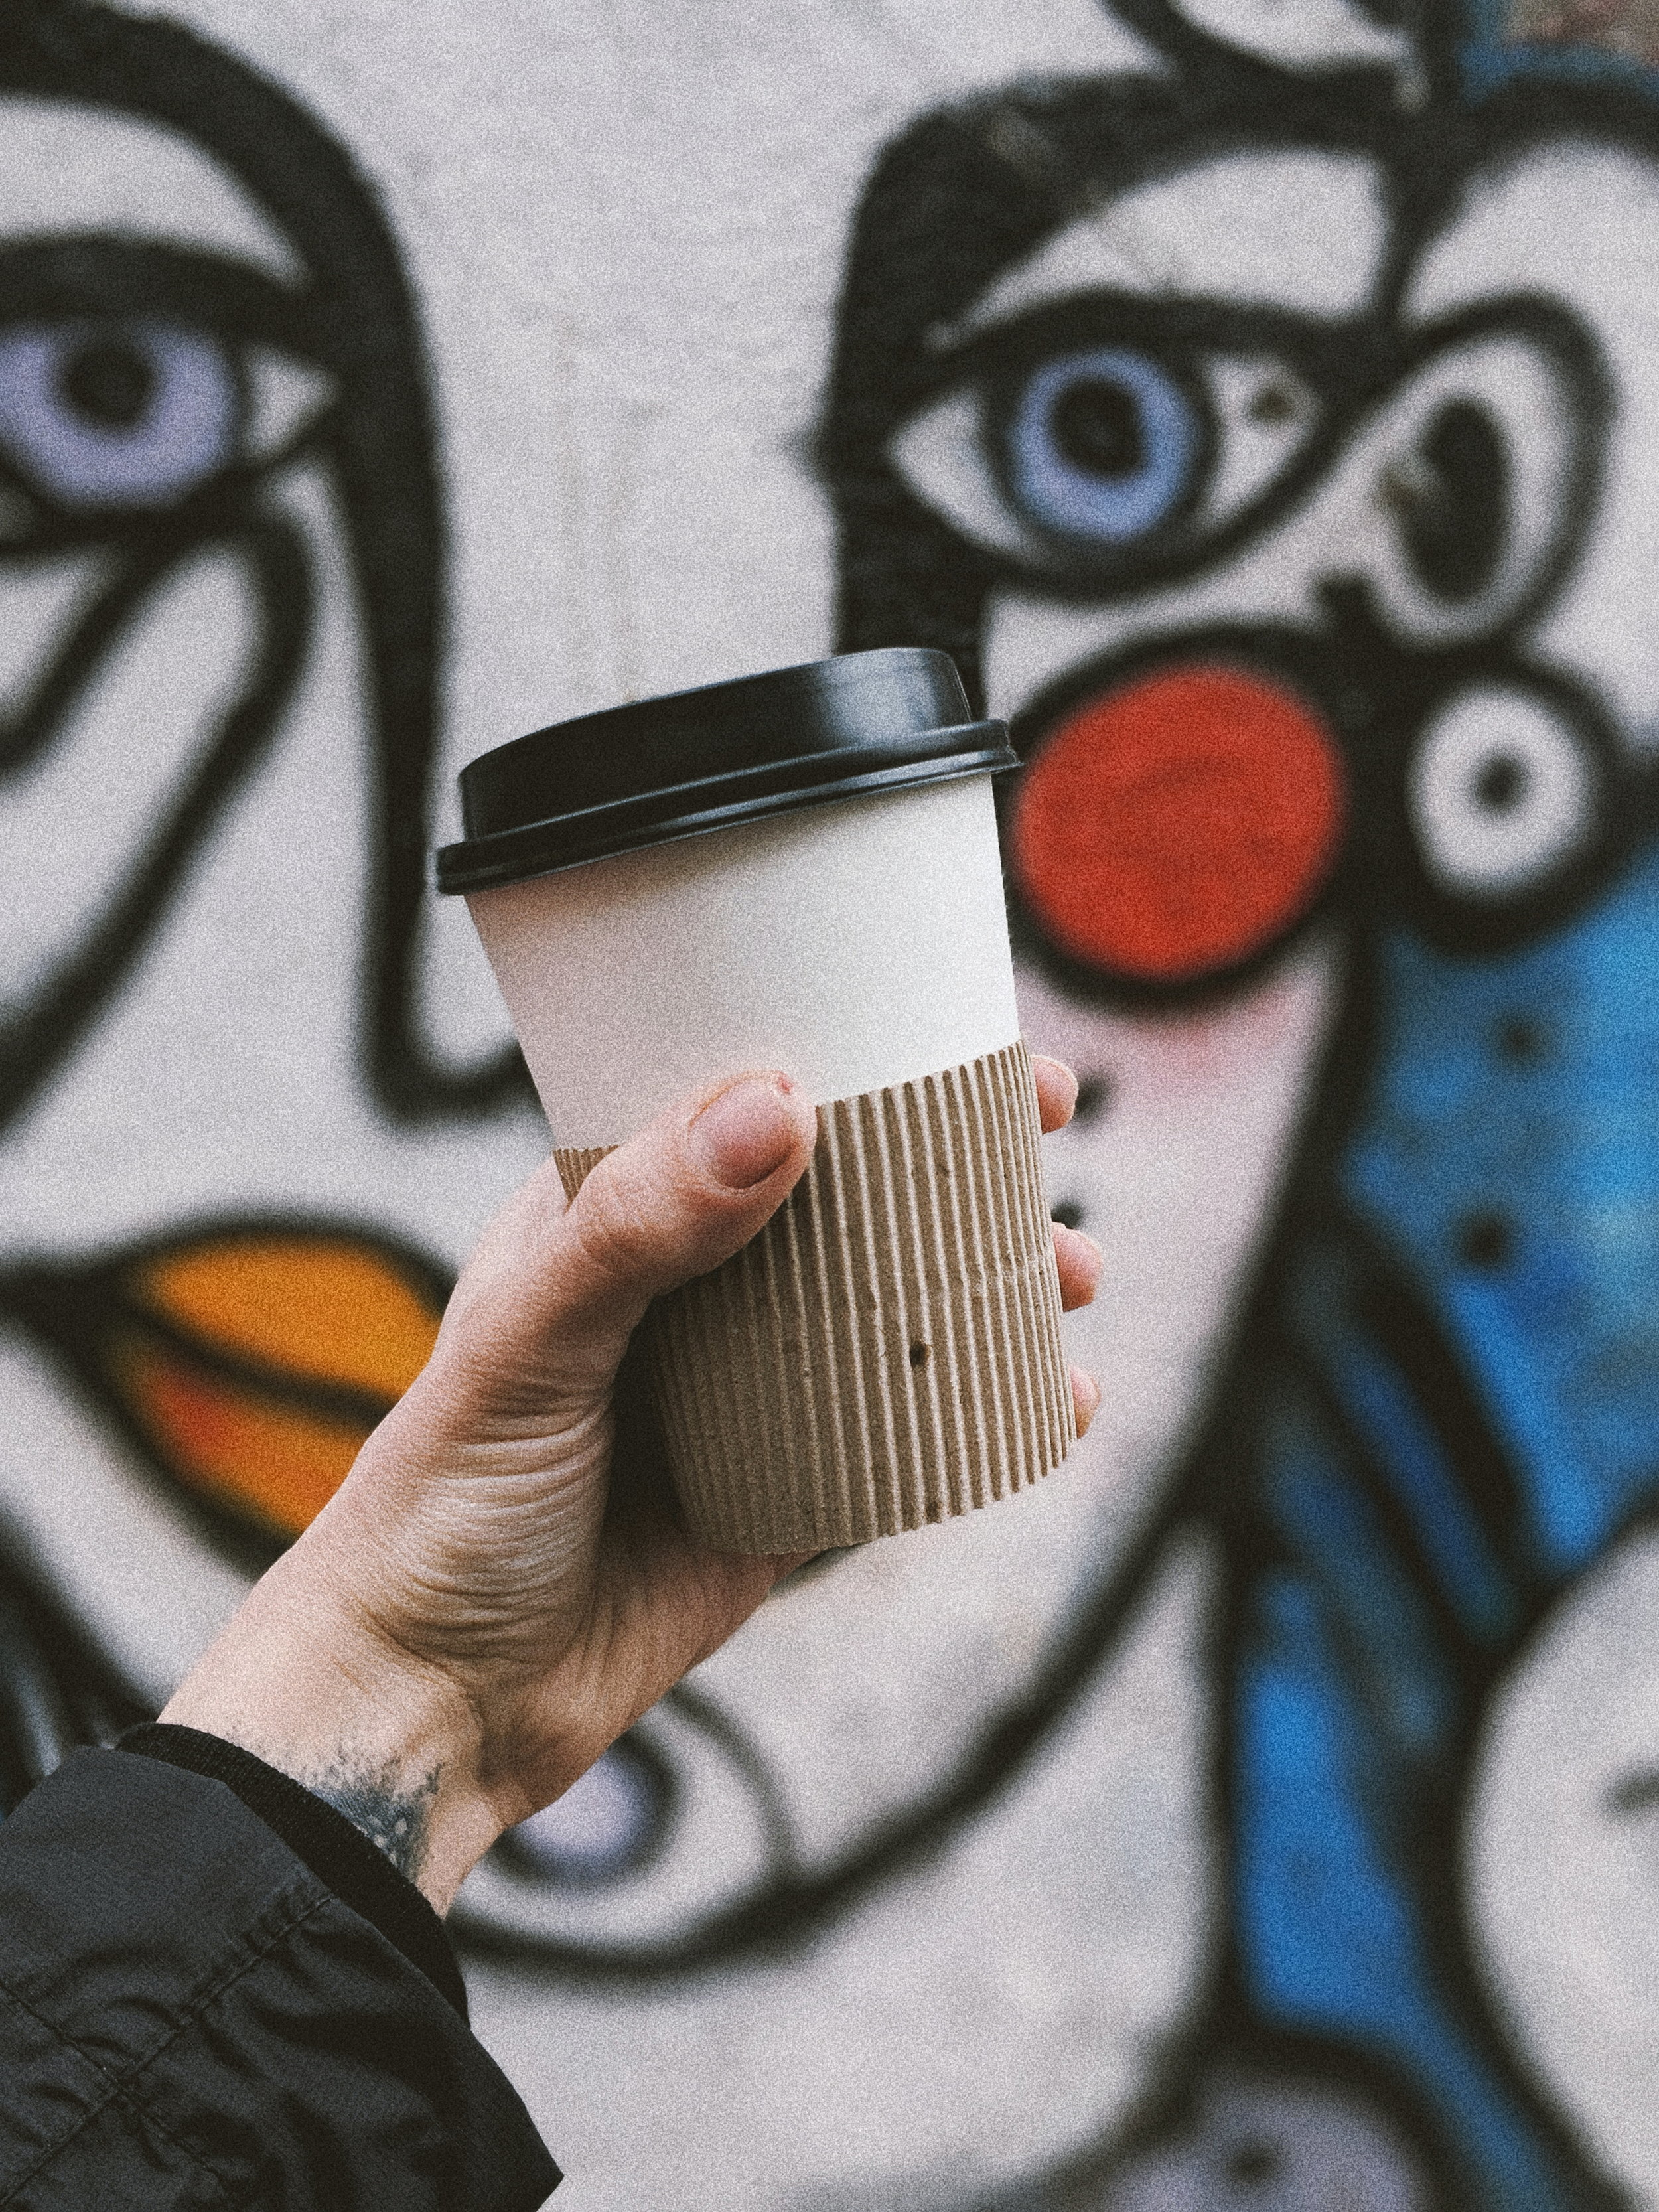 Will one of these 12 visions replace today's throwaway coffee cup? -